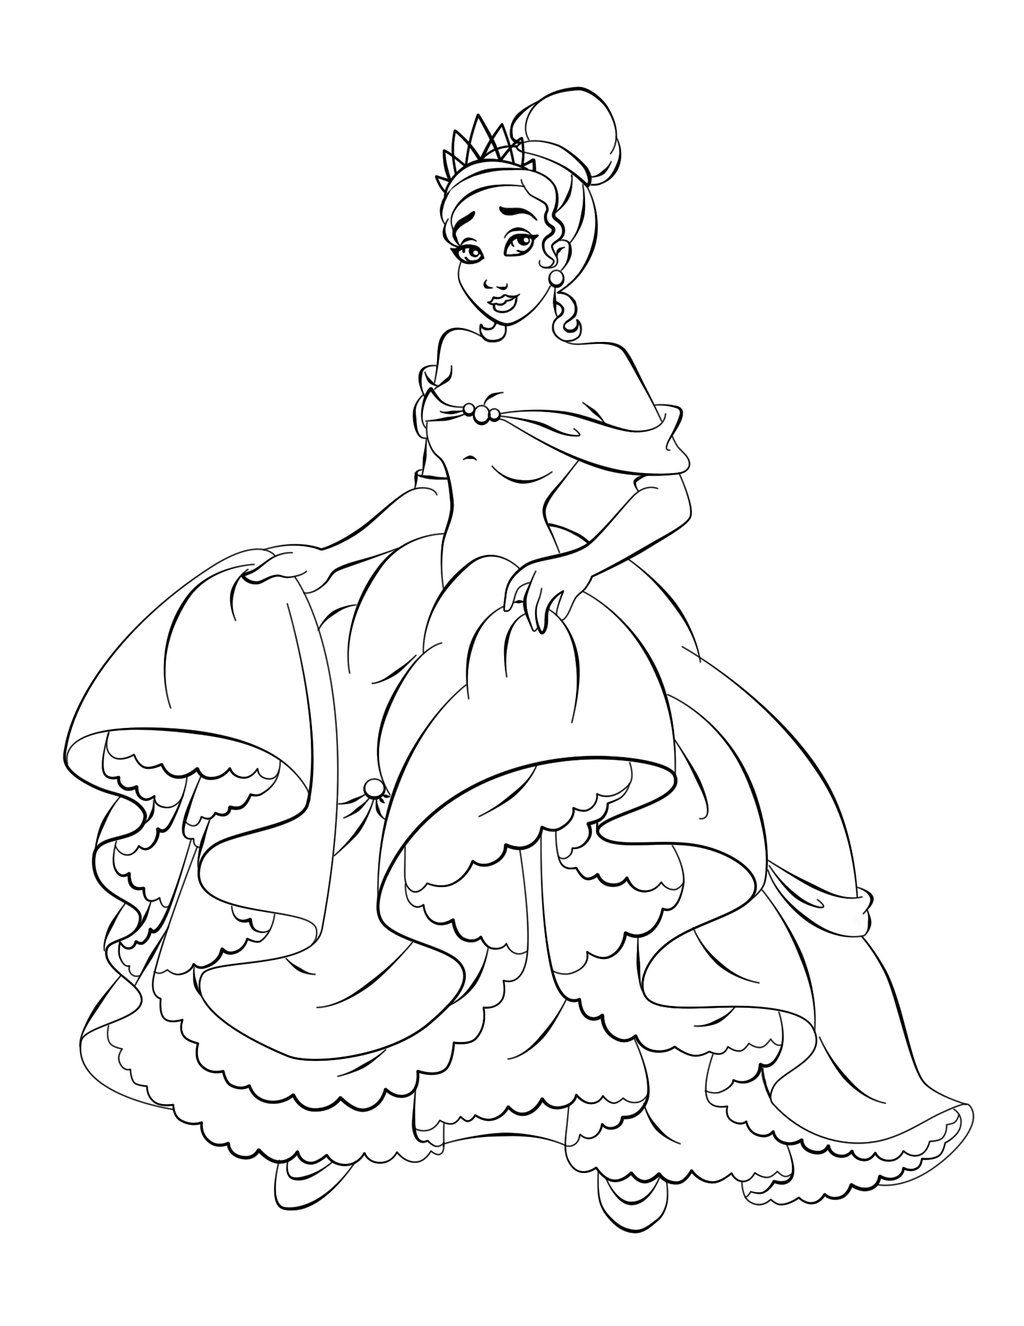 Disney Princess Tiana Coloring Pages To Girls | coloring pages ...